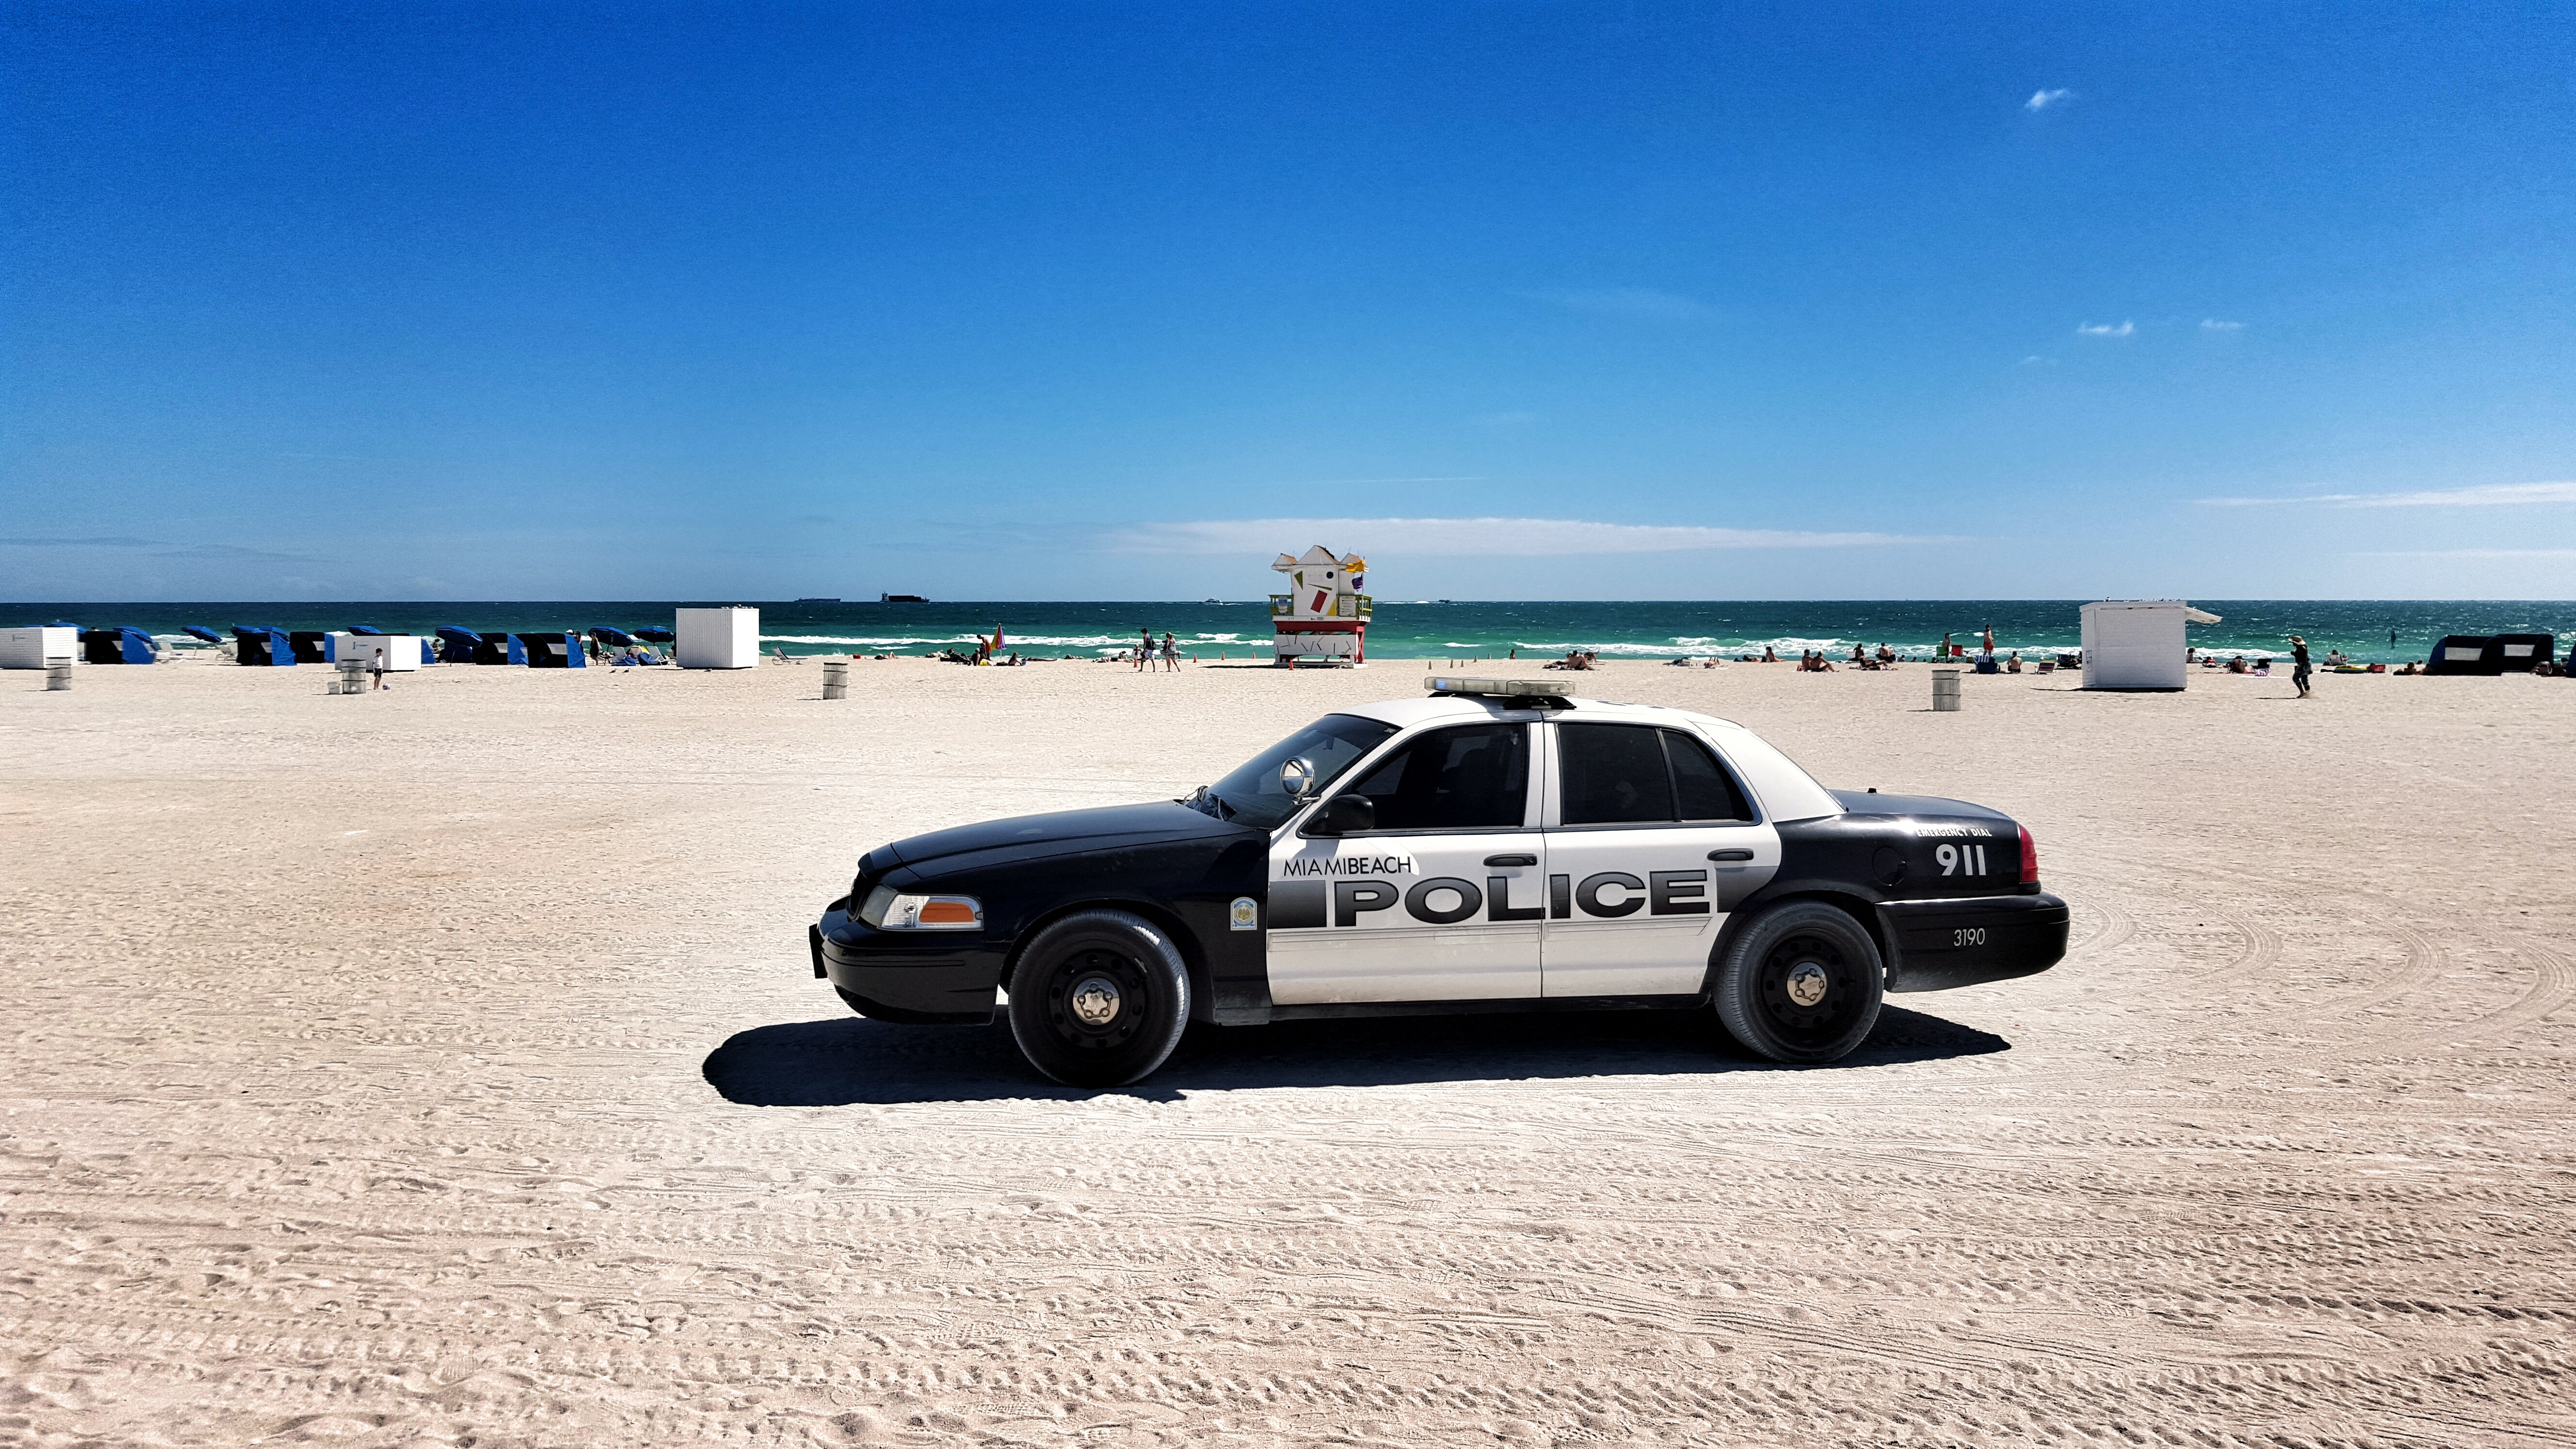 miami beach police department wikiwand